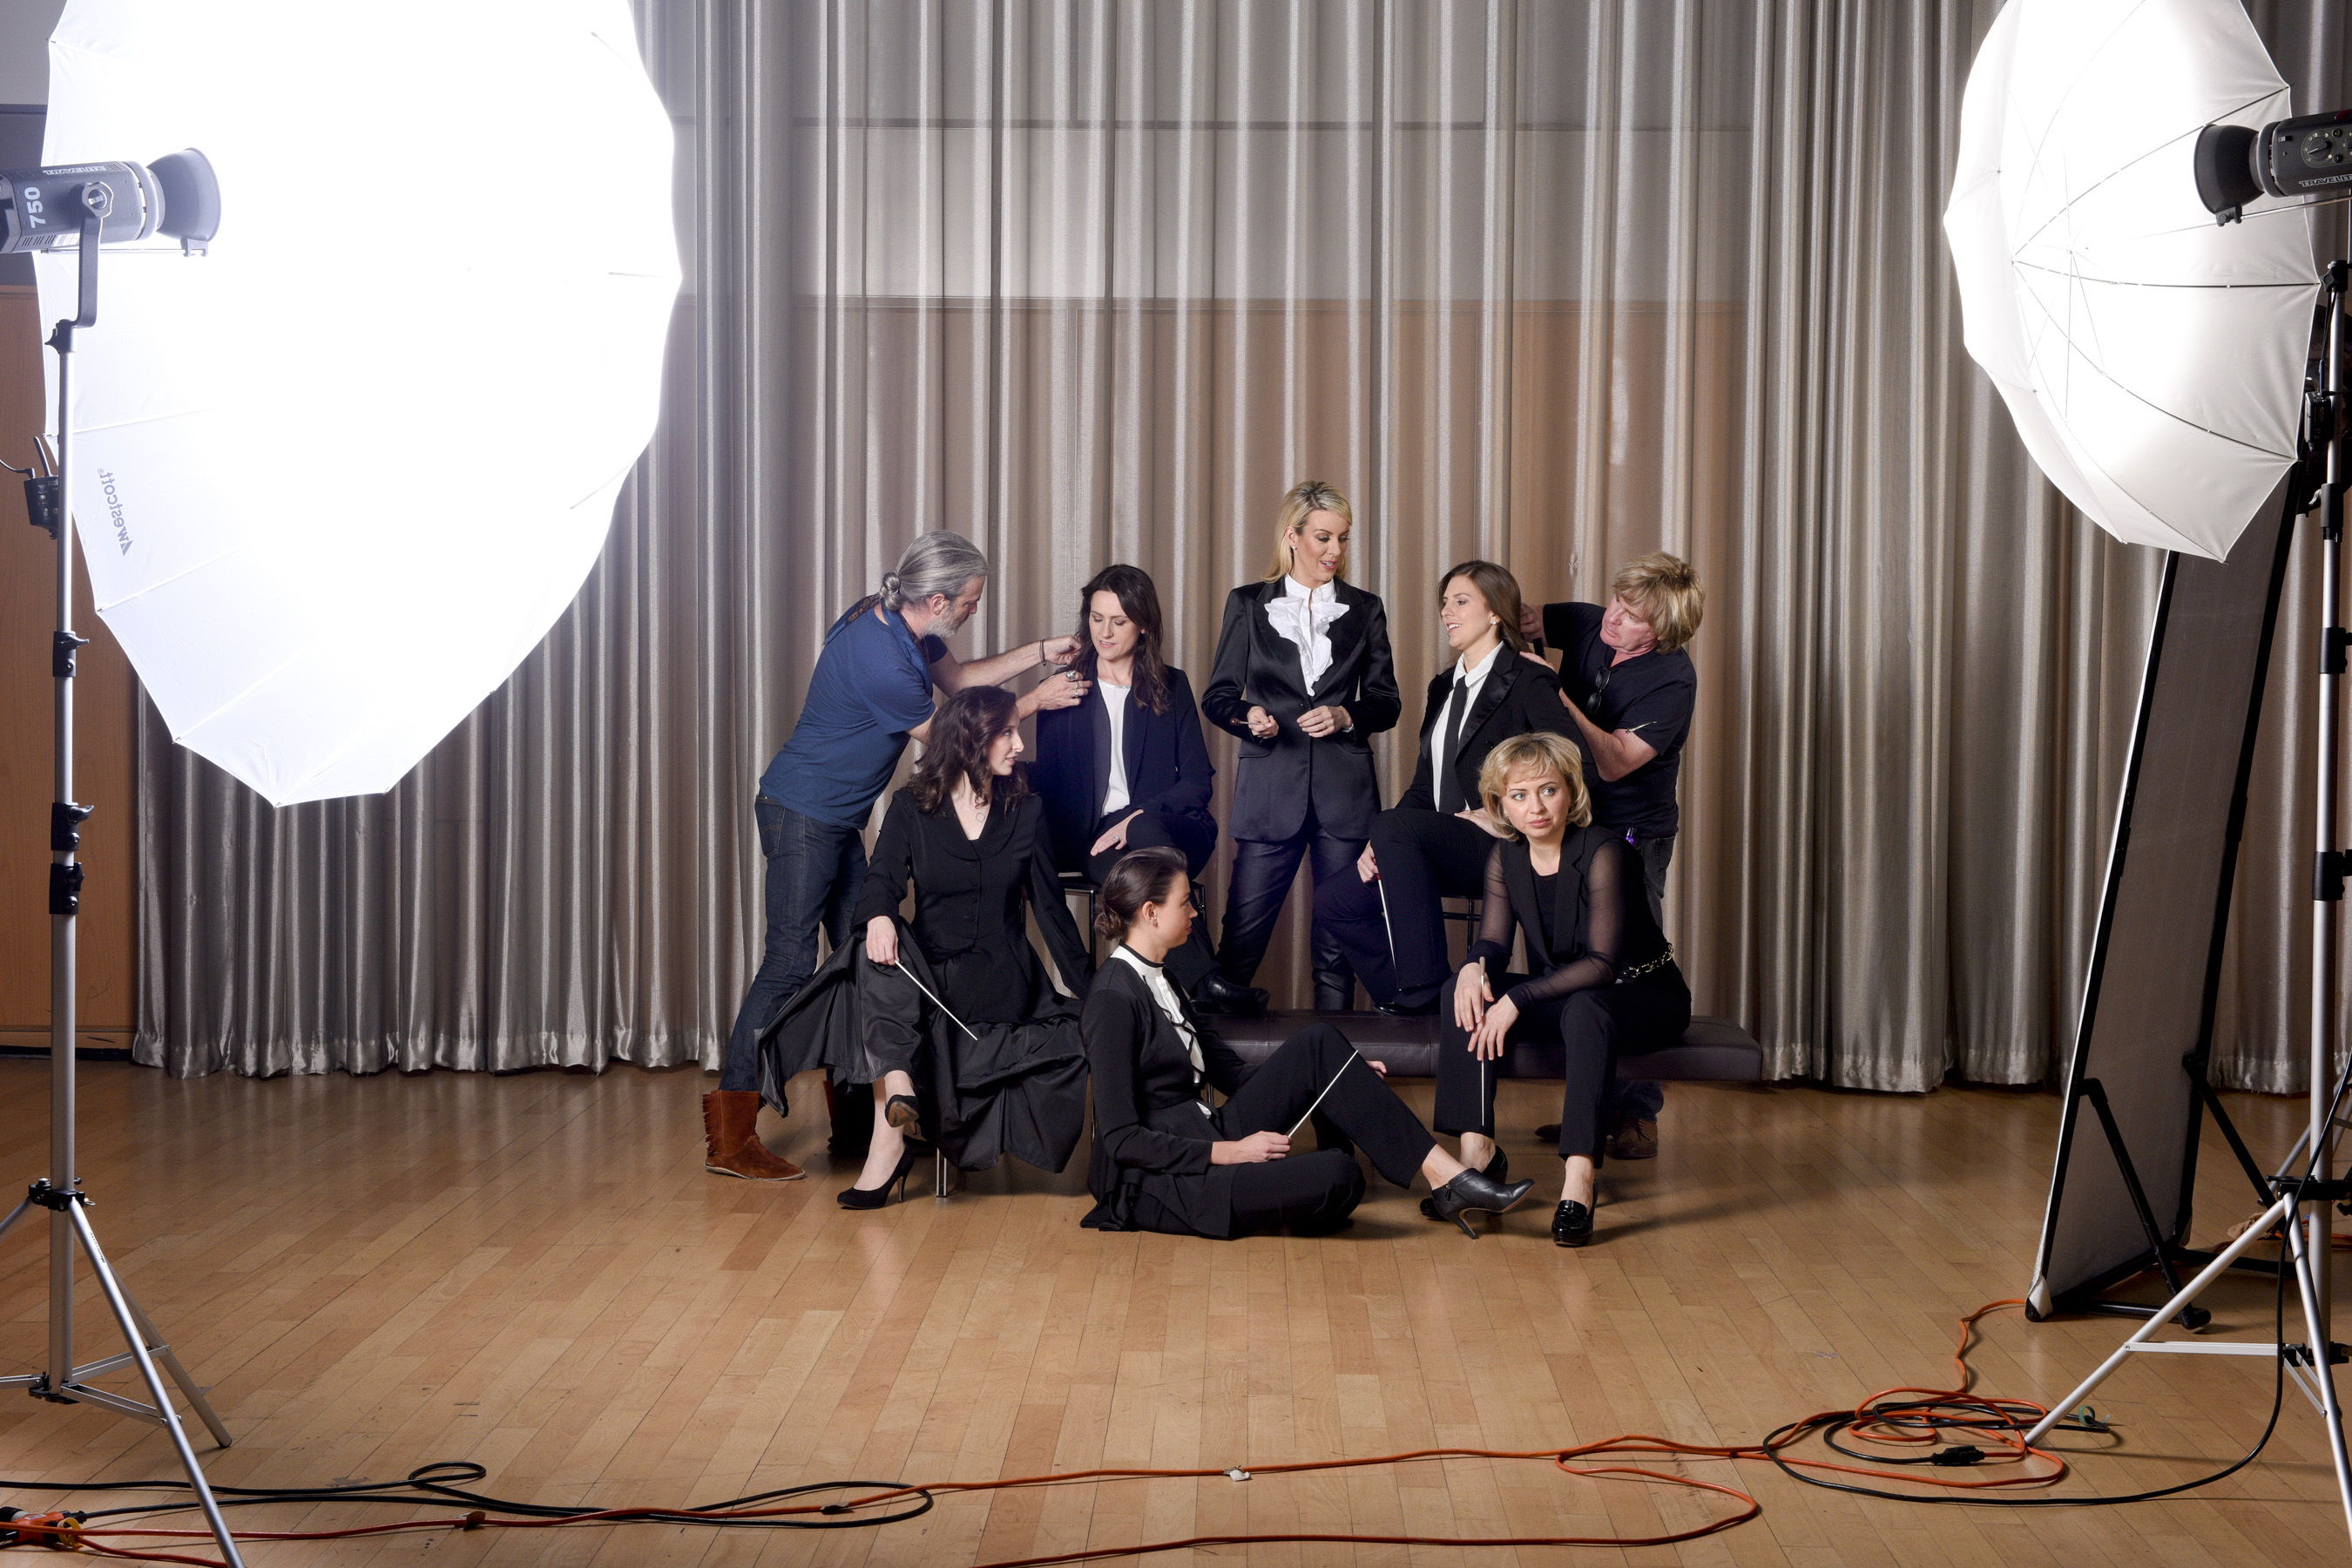 Six of the female conductors participating in the Hart Institute posing in tuxedos with batons for a photo shoot as two others help them adjust their positions for the camera.